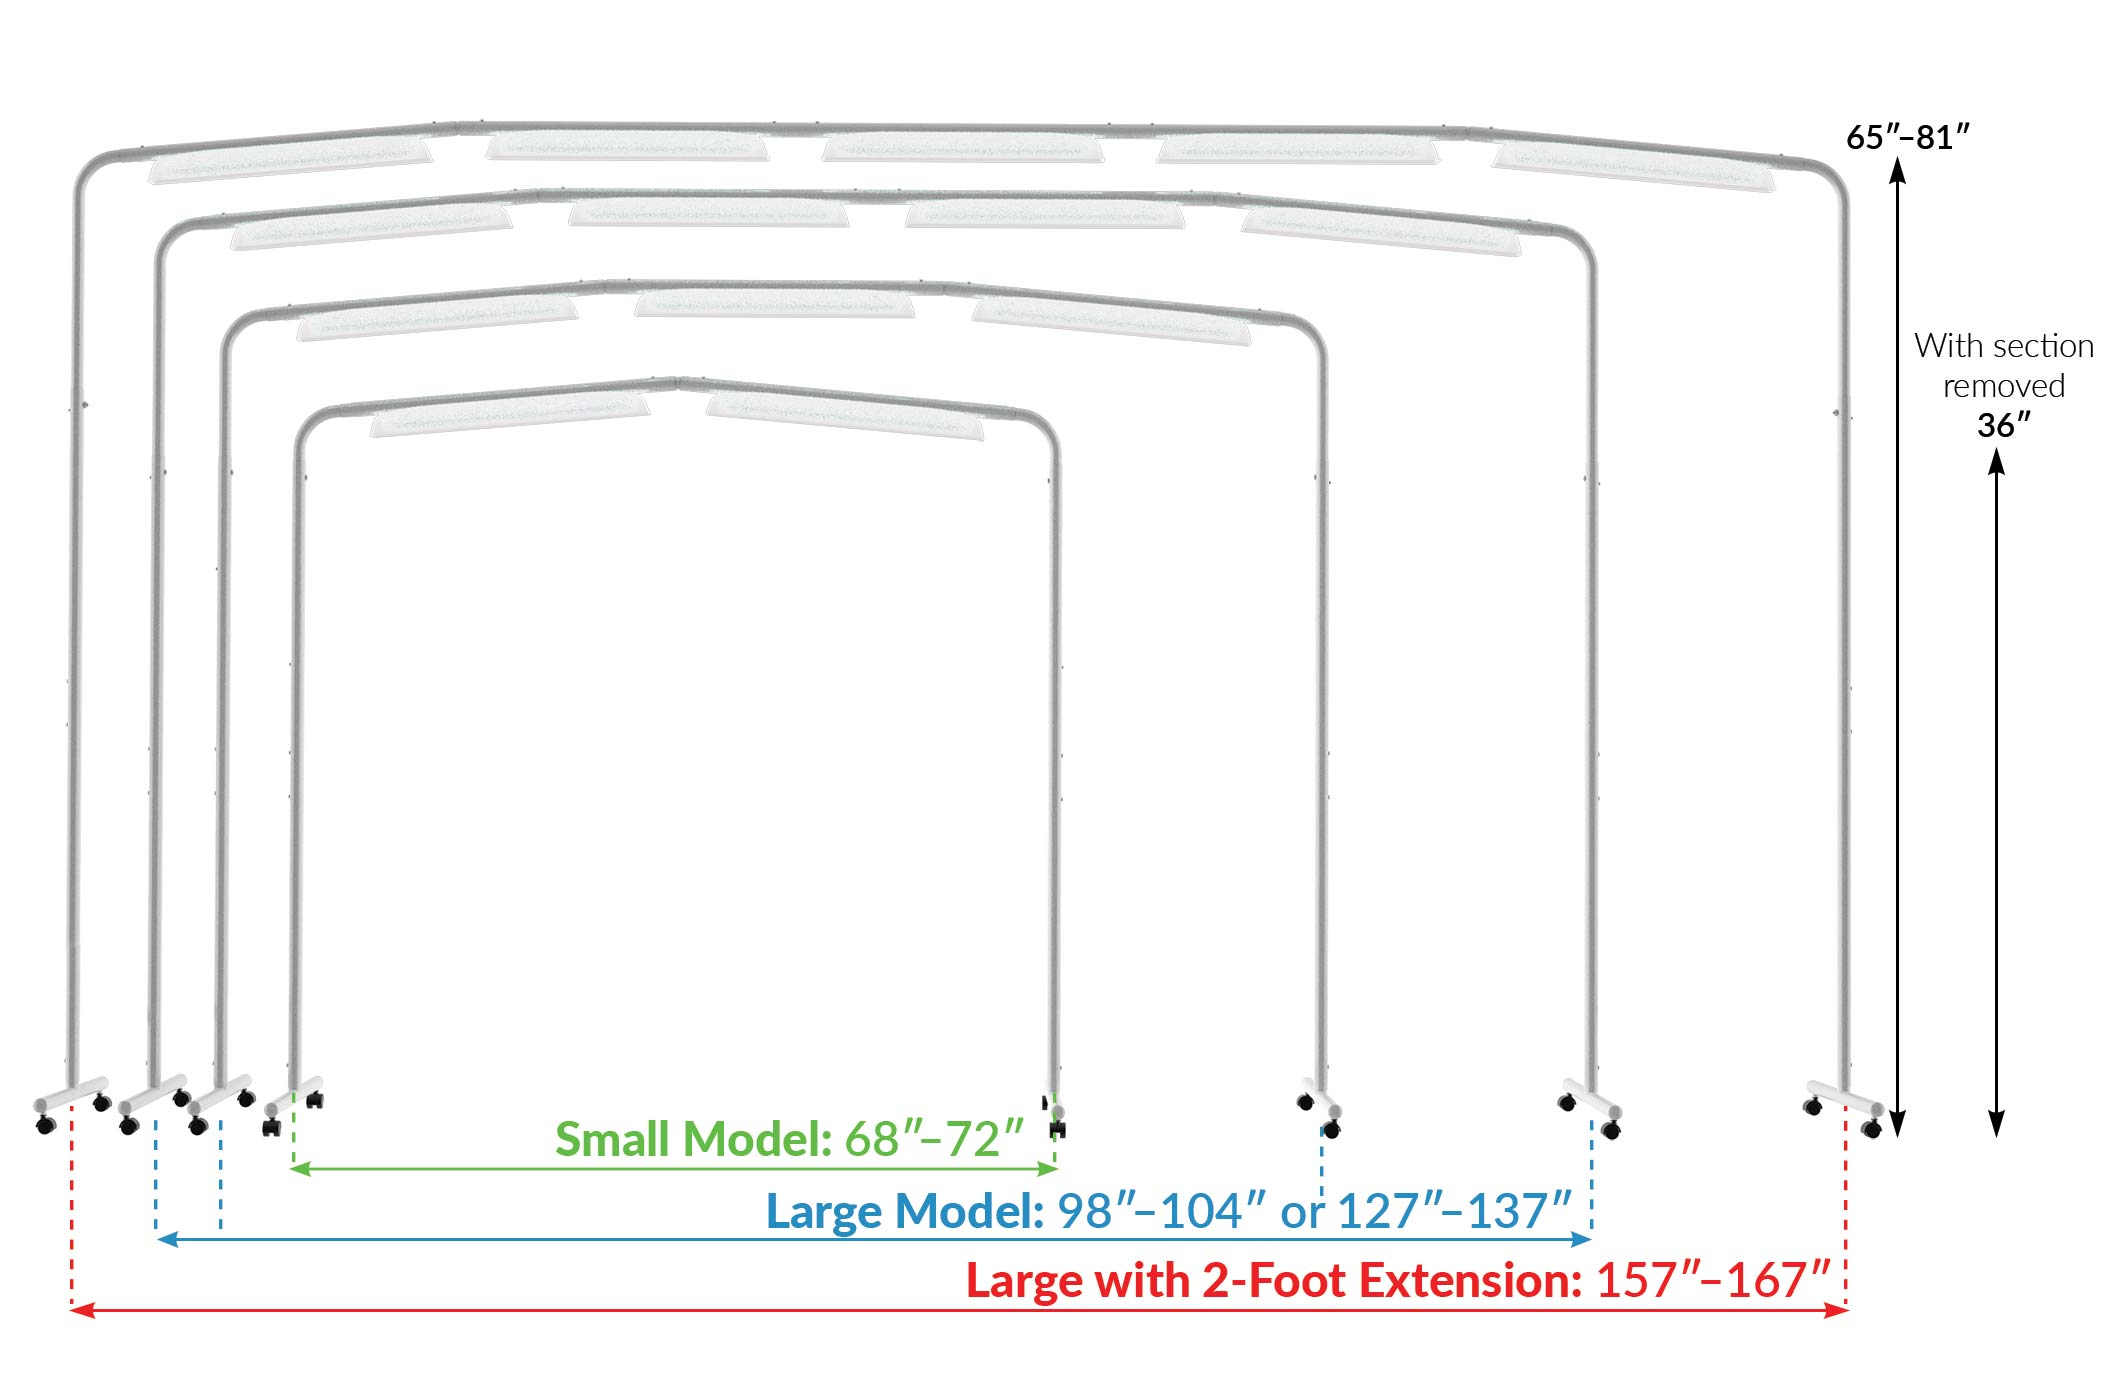 Luminess Light bar sizes